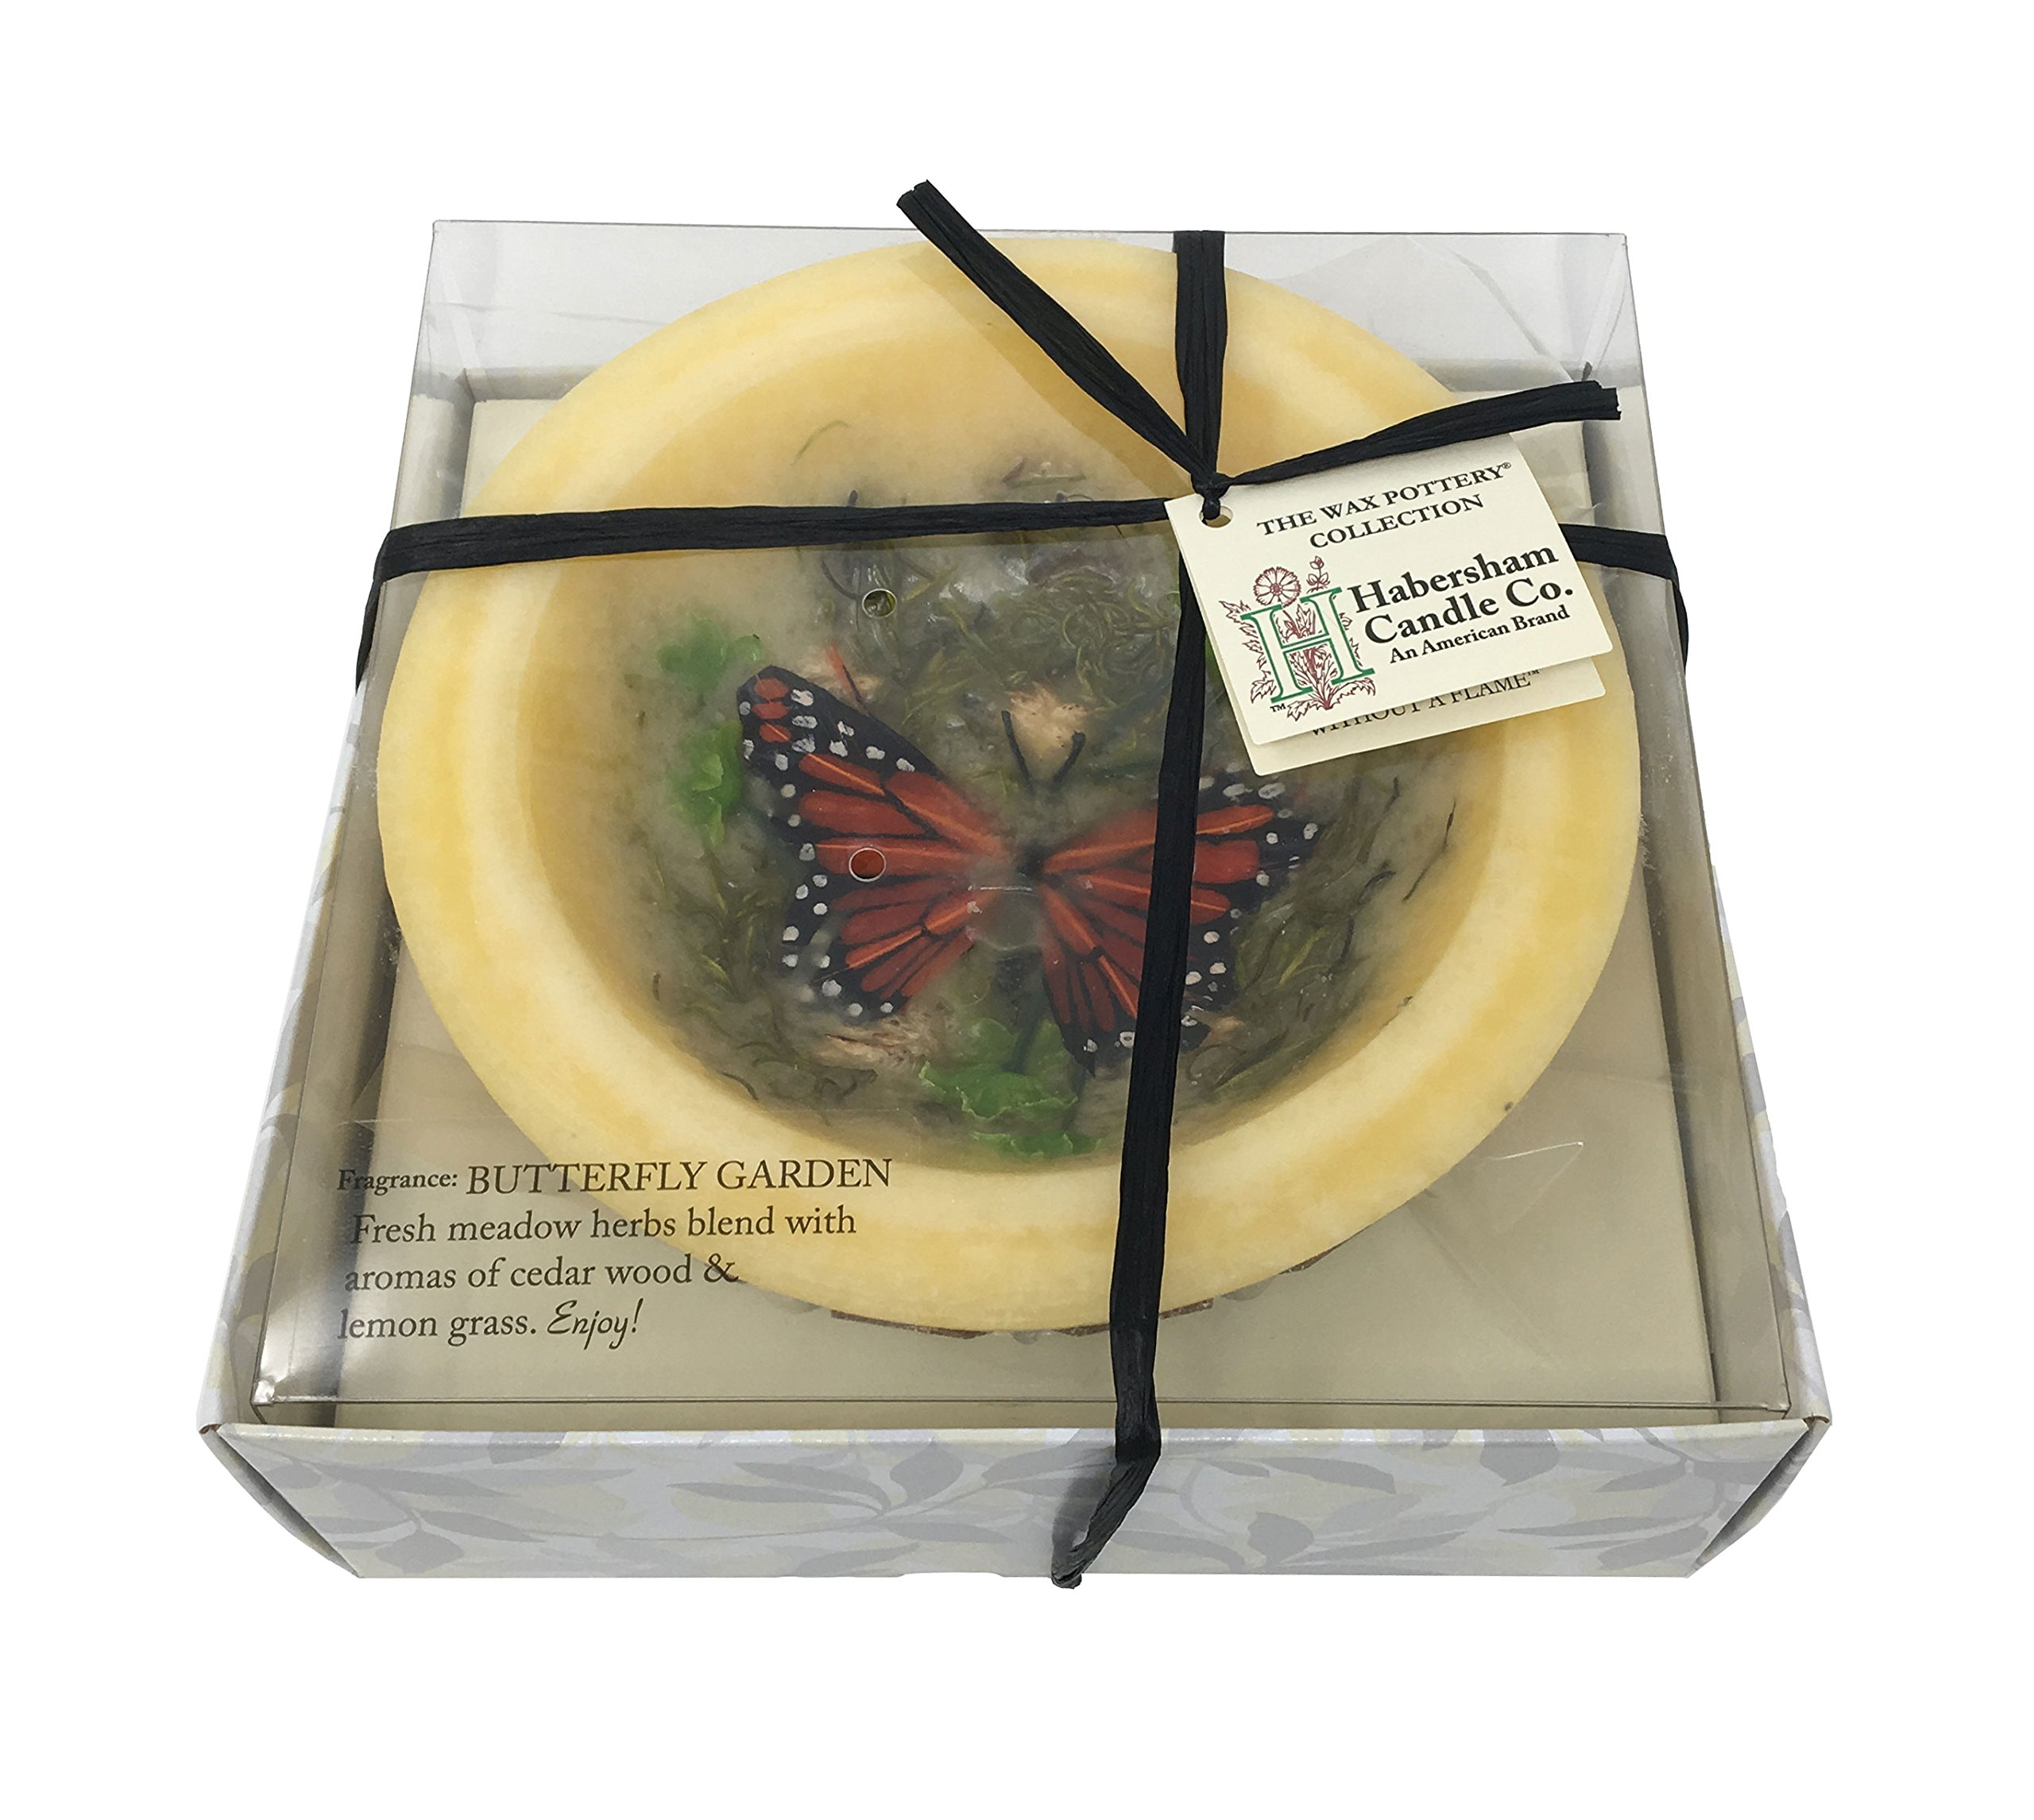 Habersham Candle Wax Pottery Large Vessel, 7-Inch Diameter with Black Stand, Butterfly Garden by Habersham Candle Co. (Image #2)